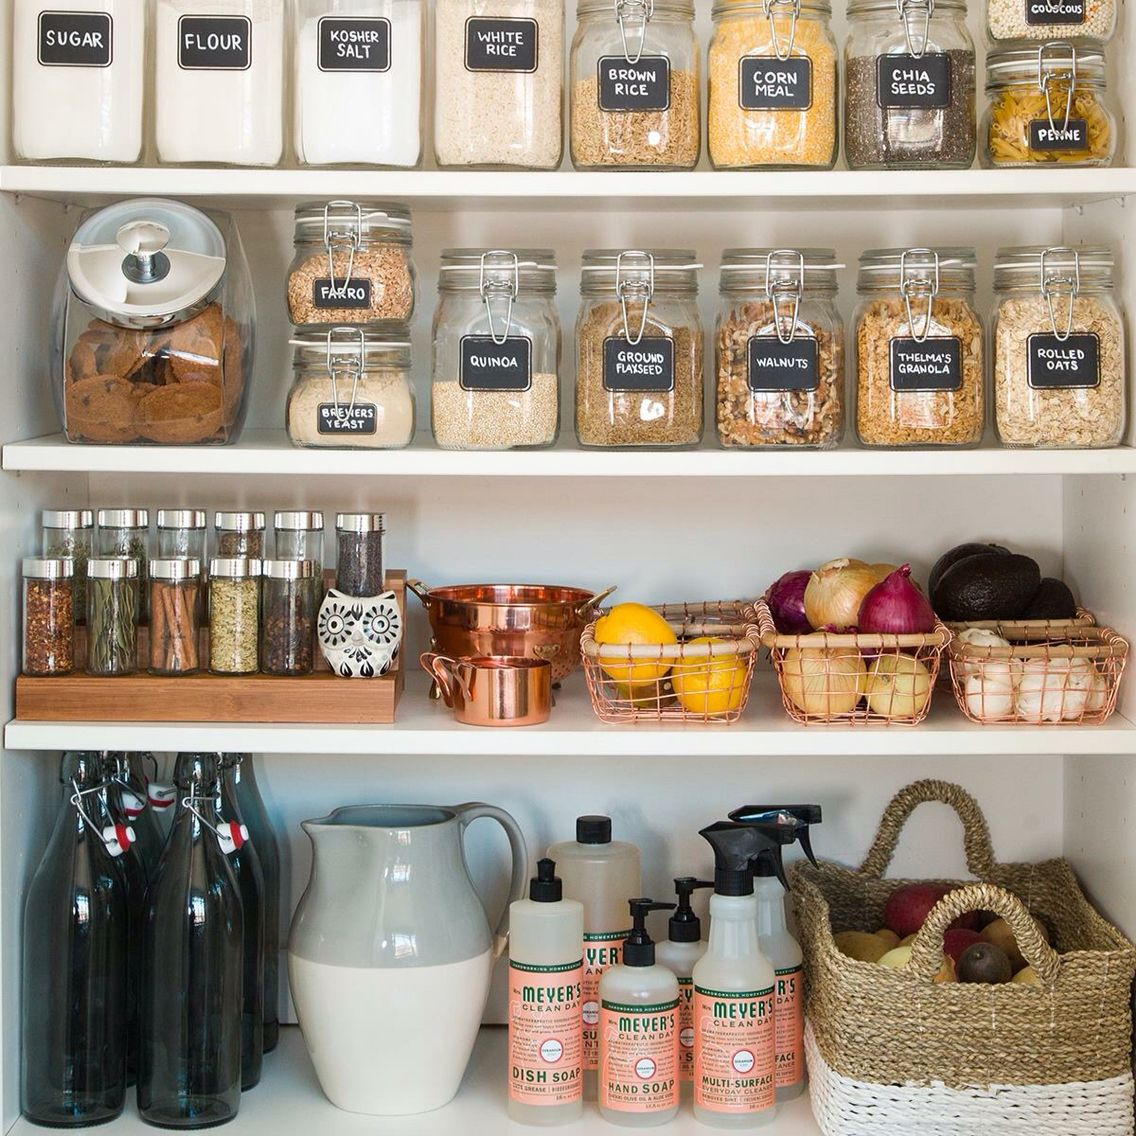 Love this pantry!!! Organization at its best!!!